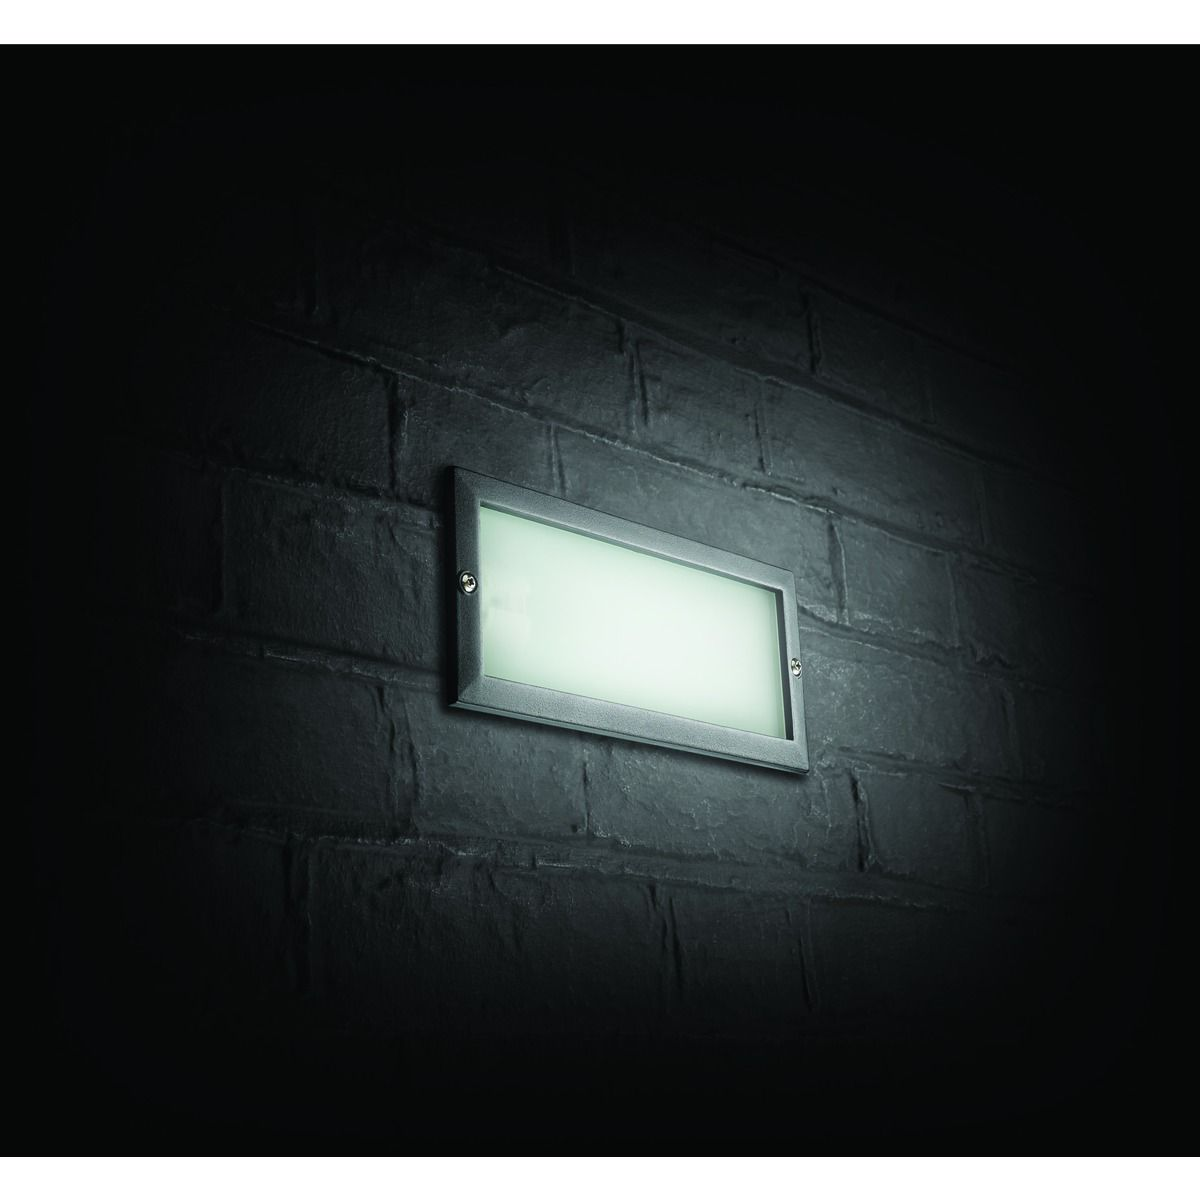 Outside Wall Lights Wickes : Search outdoor wall lights Wickes.co.uk